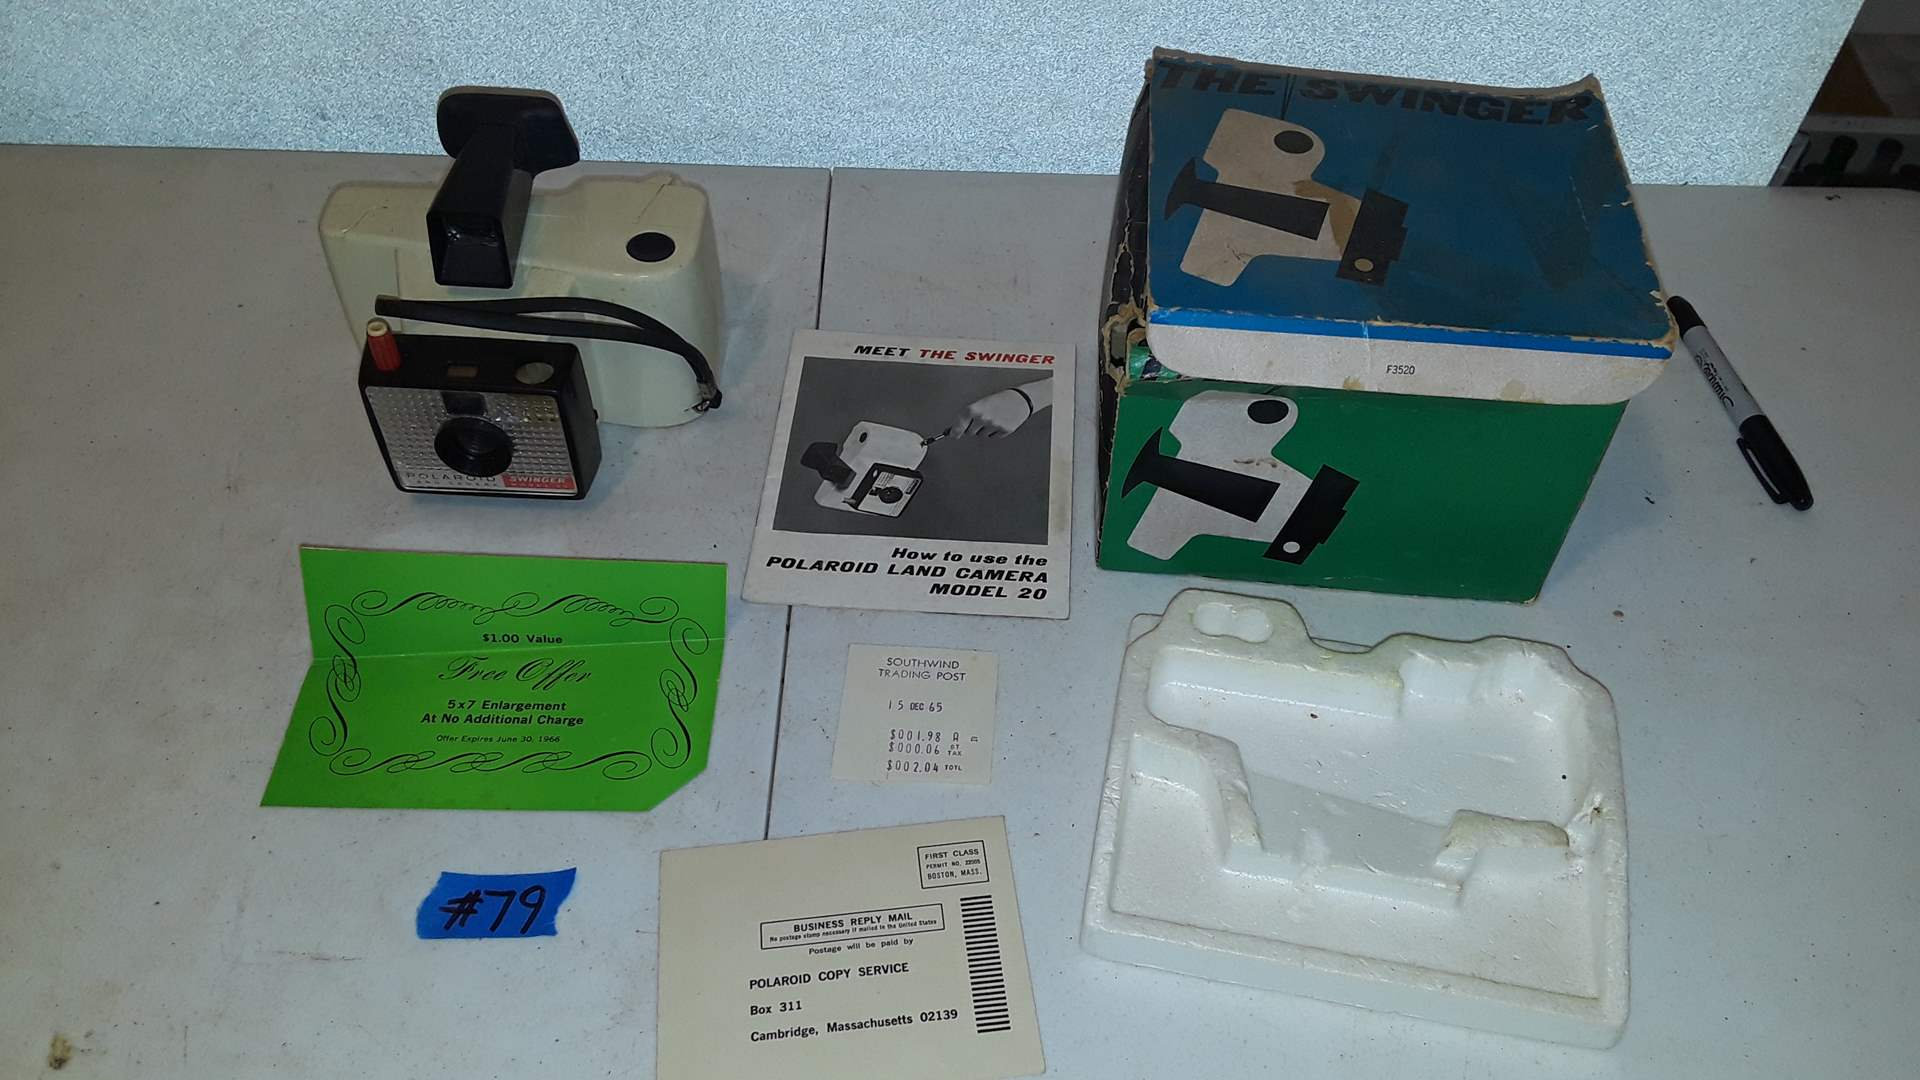 Lot # 79 POLAROID SWINGER MODEL 20 CAMERA WITH ORIGINAL RECEIPT AND STAMPS